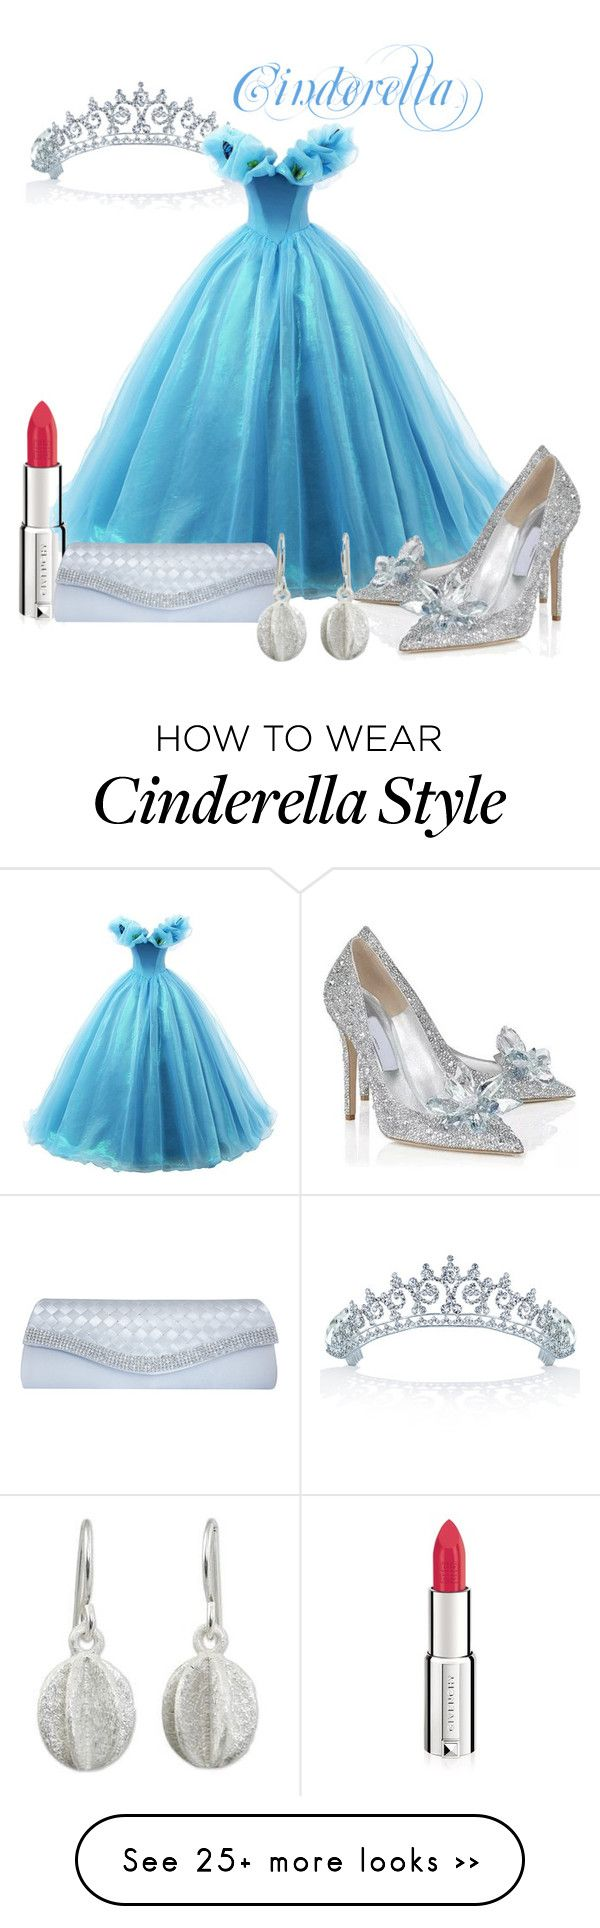 """""""Cinderella"""" by inspiredby-beatrixpotter on Polyvore featuring moda, Bling Jewelry, Givenchy, GCGme, NOVICA, cinderella y fashionset"""